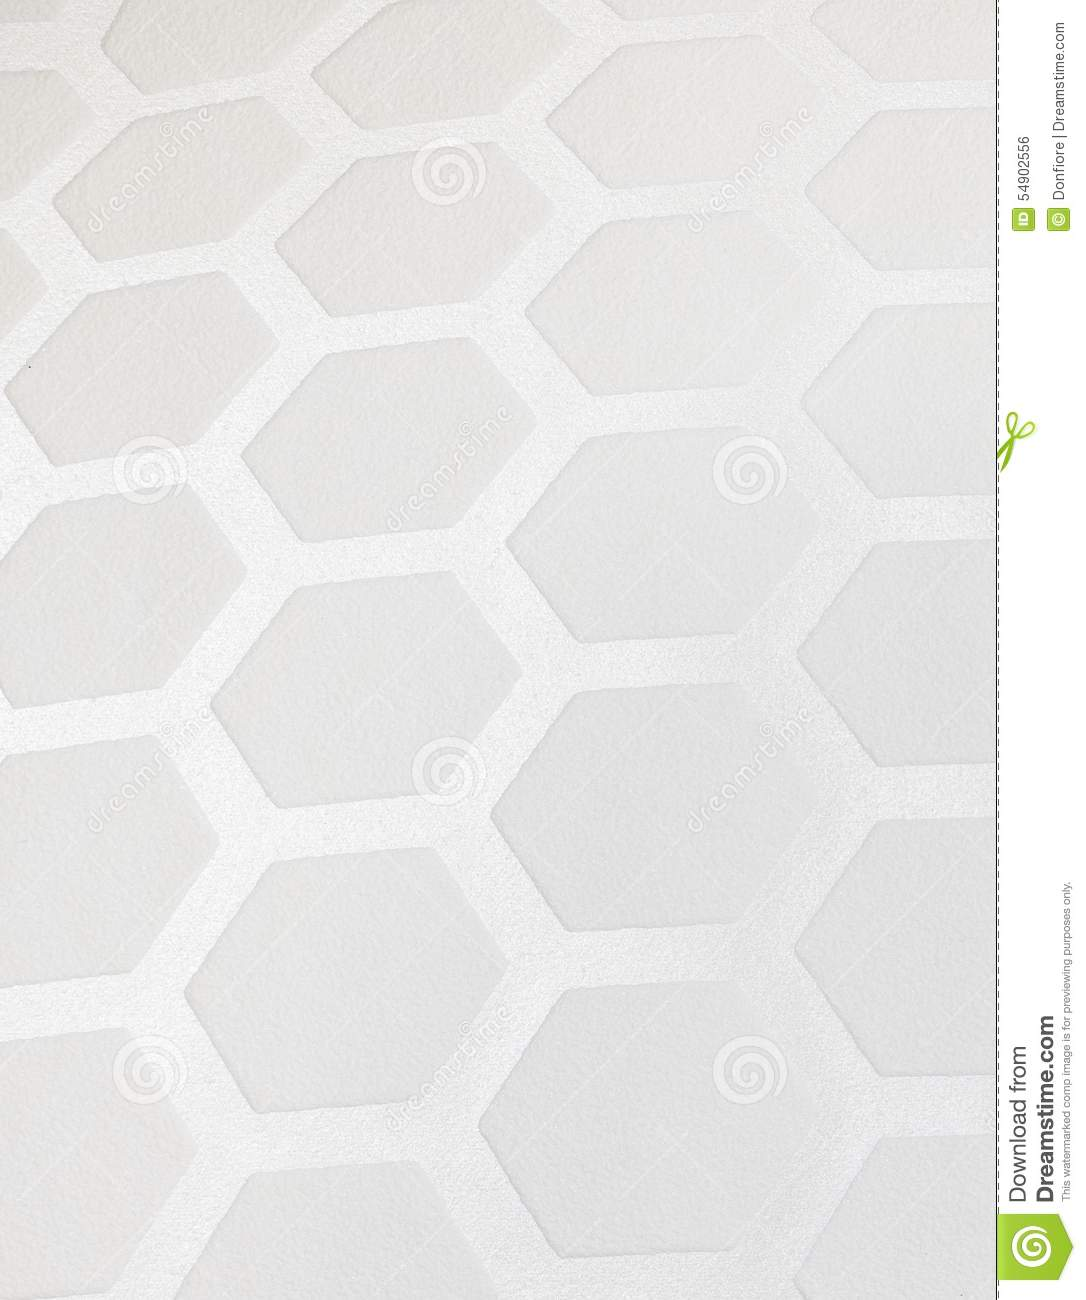 Fond Blanc De Papier Peint De Modele D Hexagone Photo Stock Image